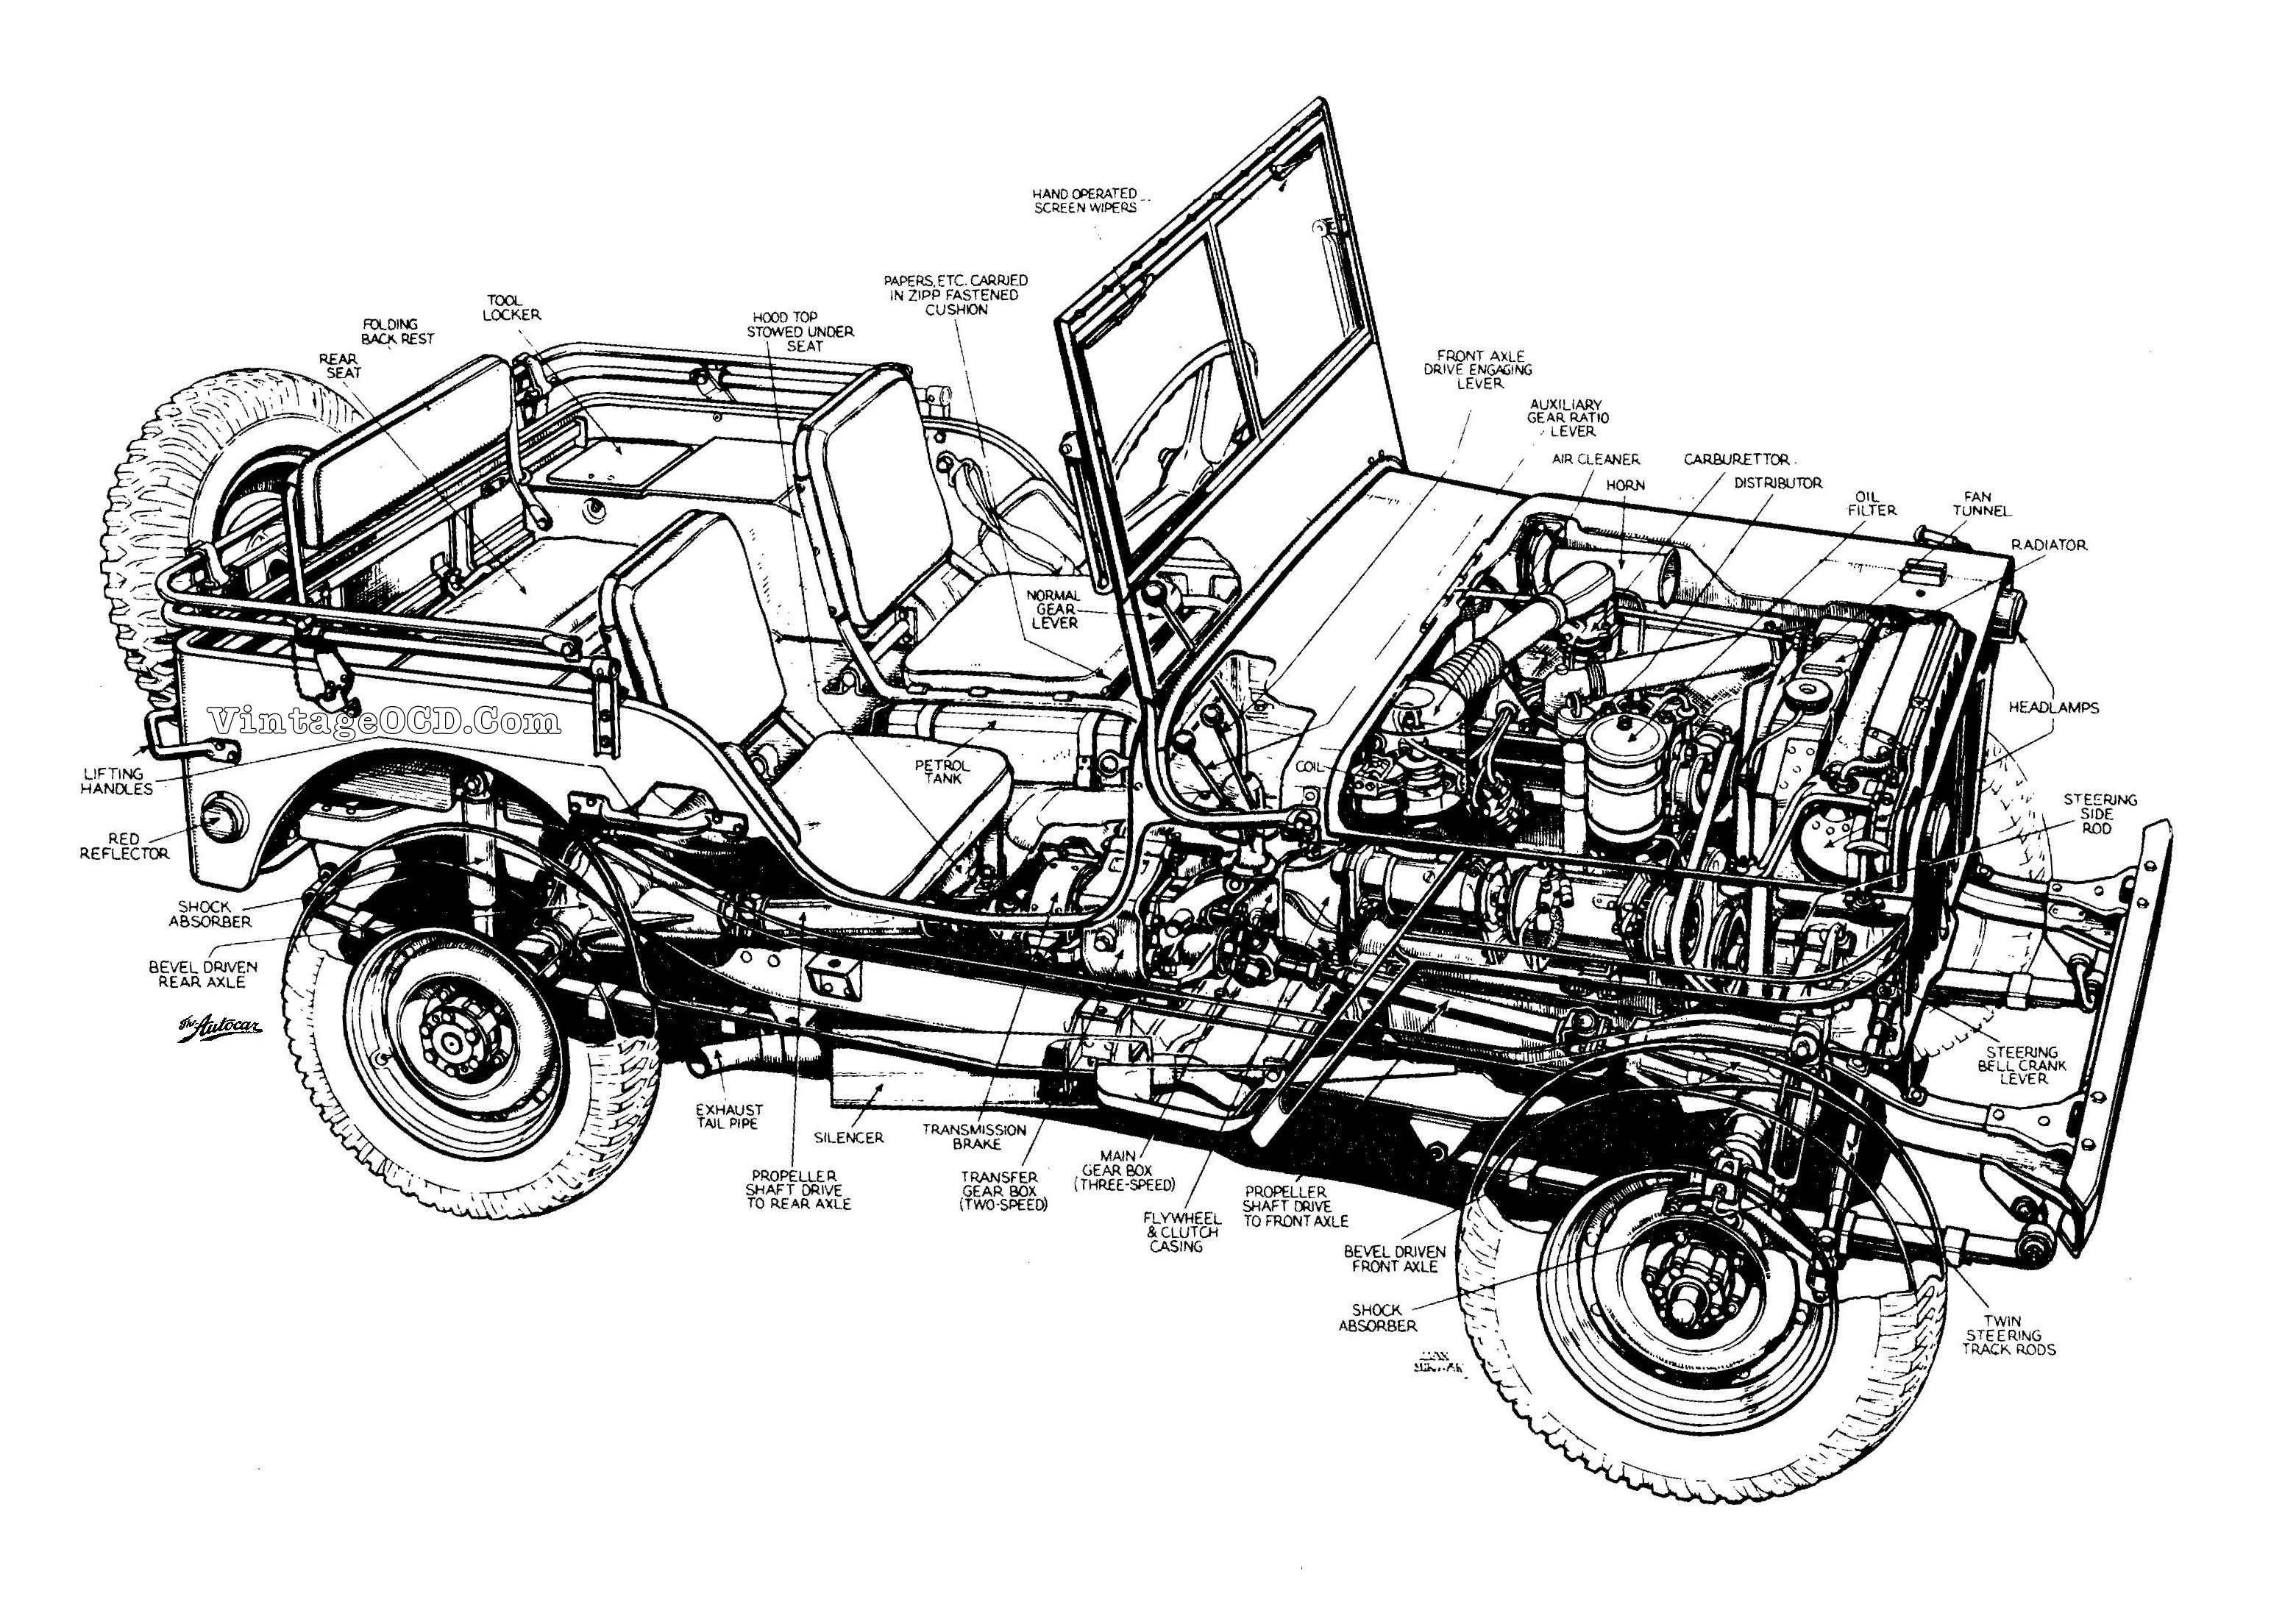 1964 willys jeep wiring diagram wiring library 1964 Willys Jeep Wiring Diagram m38 jeep wiring diagram wiring